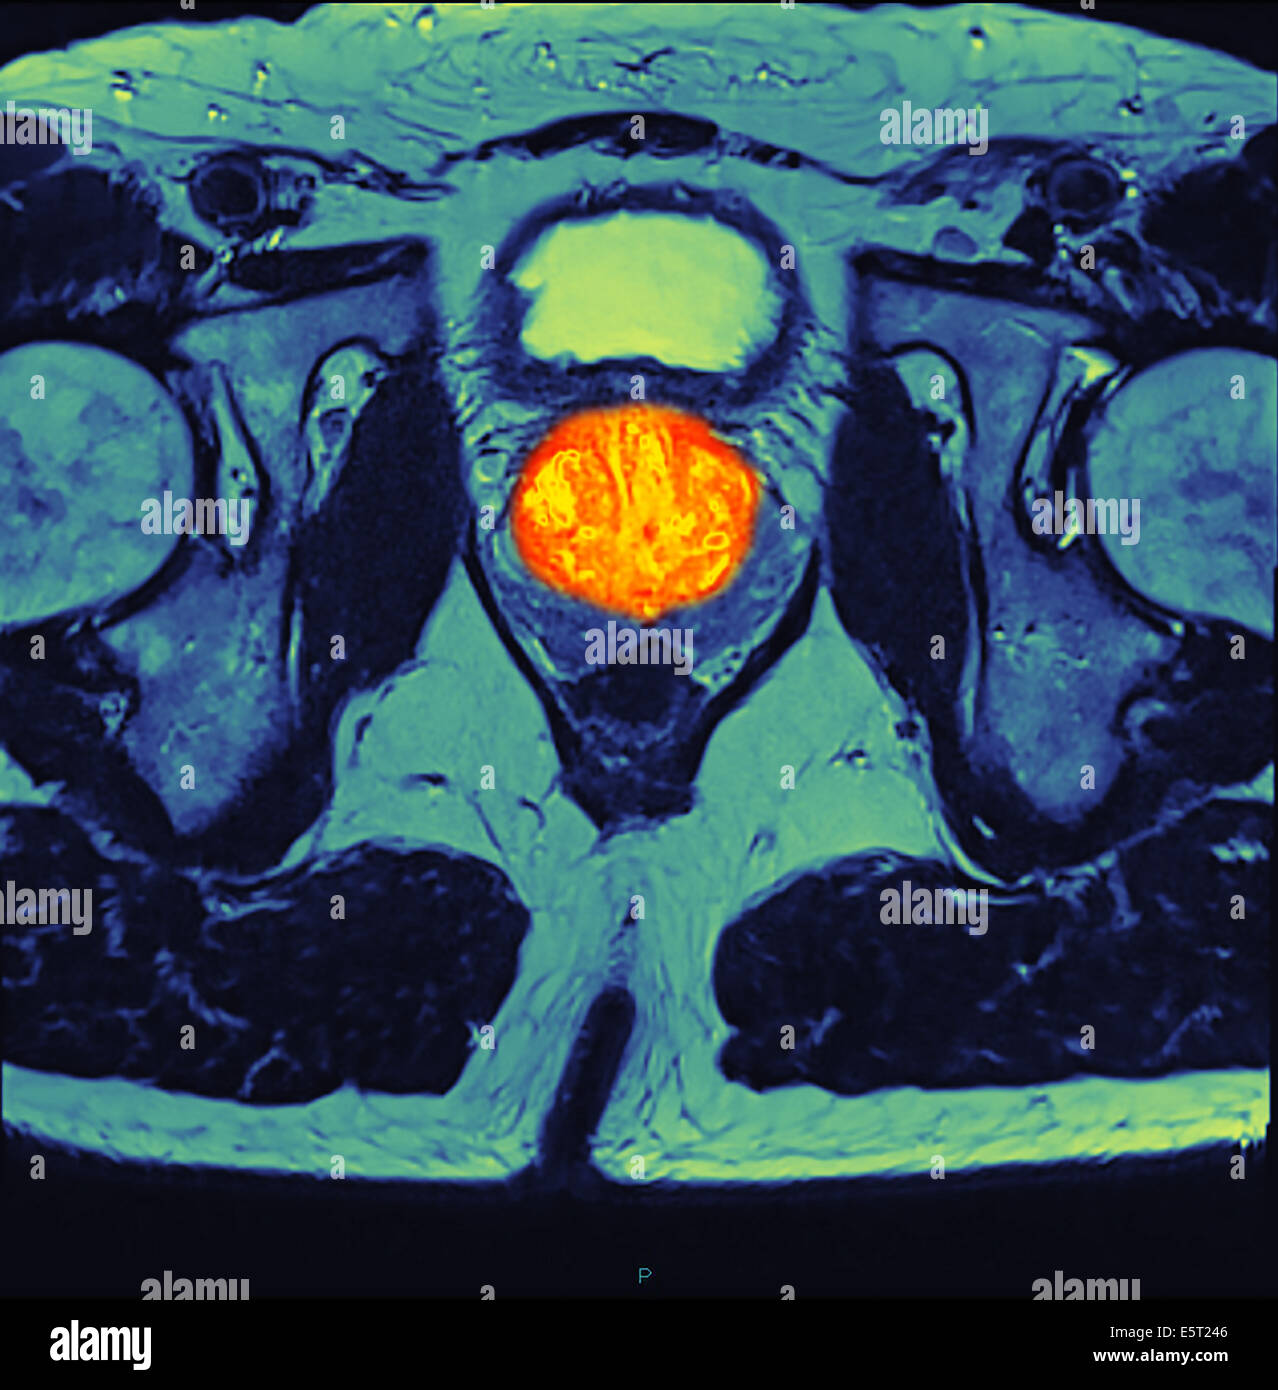 Magnetic resonance imaging (MRI) scan of a section through the pelvis of a with prostate cancer (orange, at centre). - Stock Image